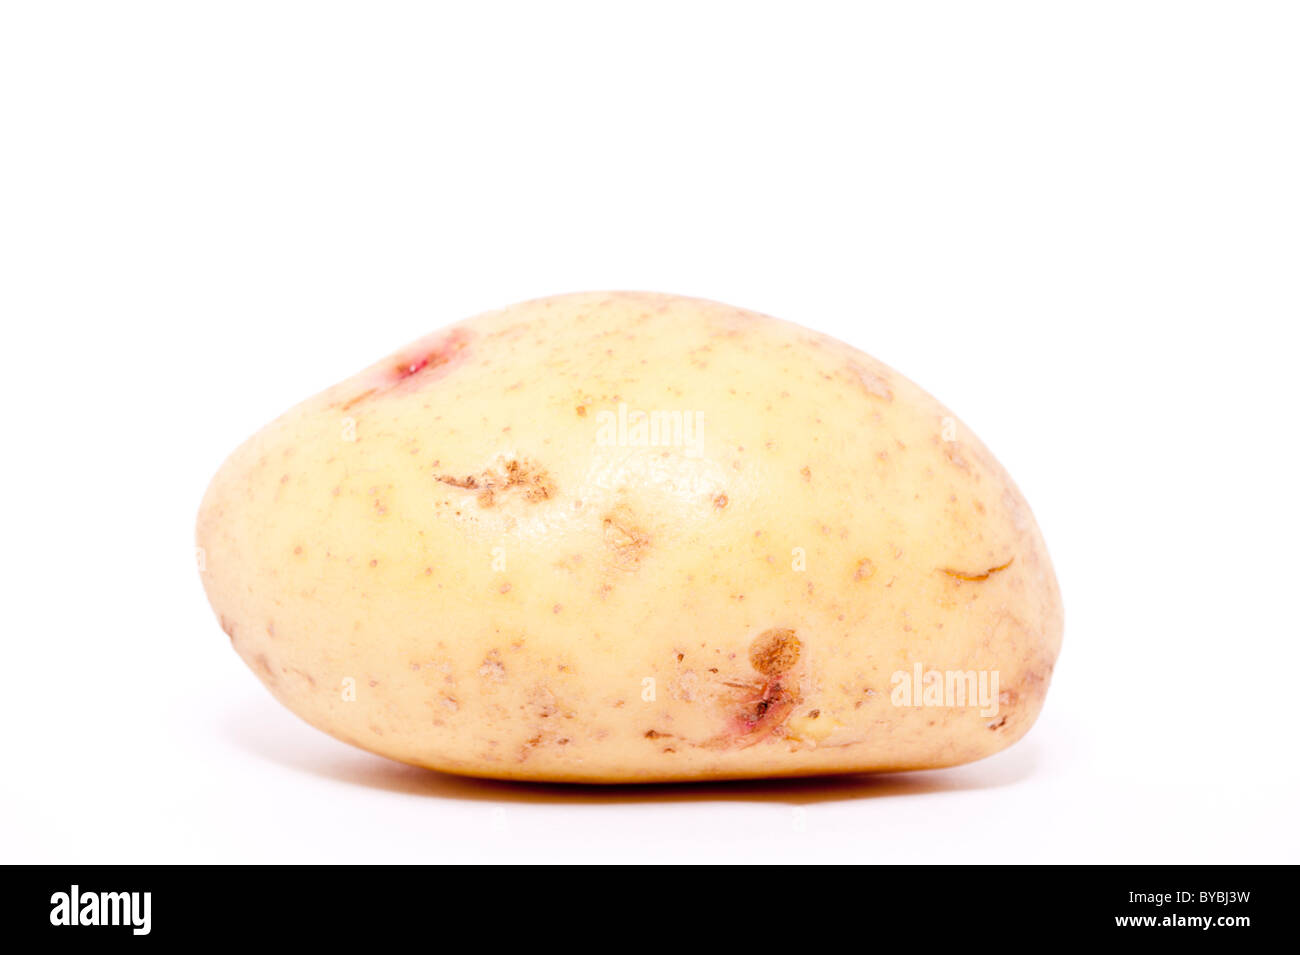 A white potato on a white background - Stock Image